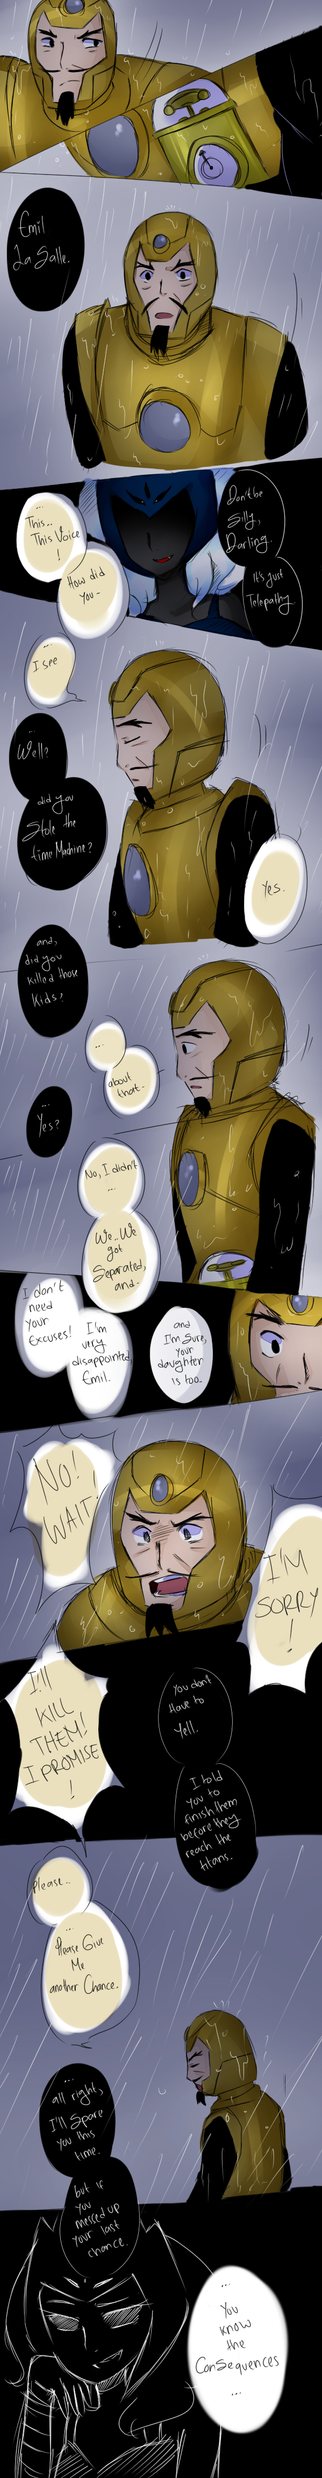 .: Sakutia Disease : Page 22 :. by FnFiNdOART